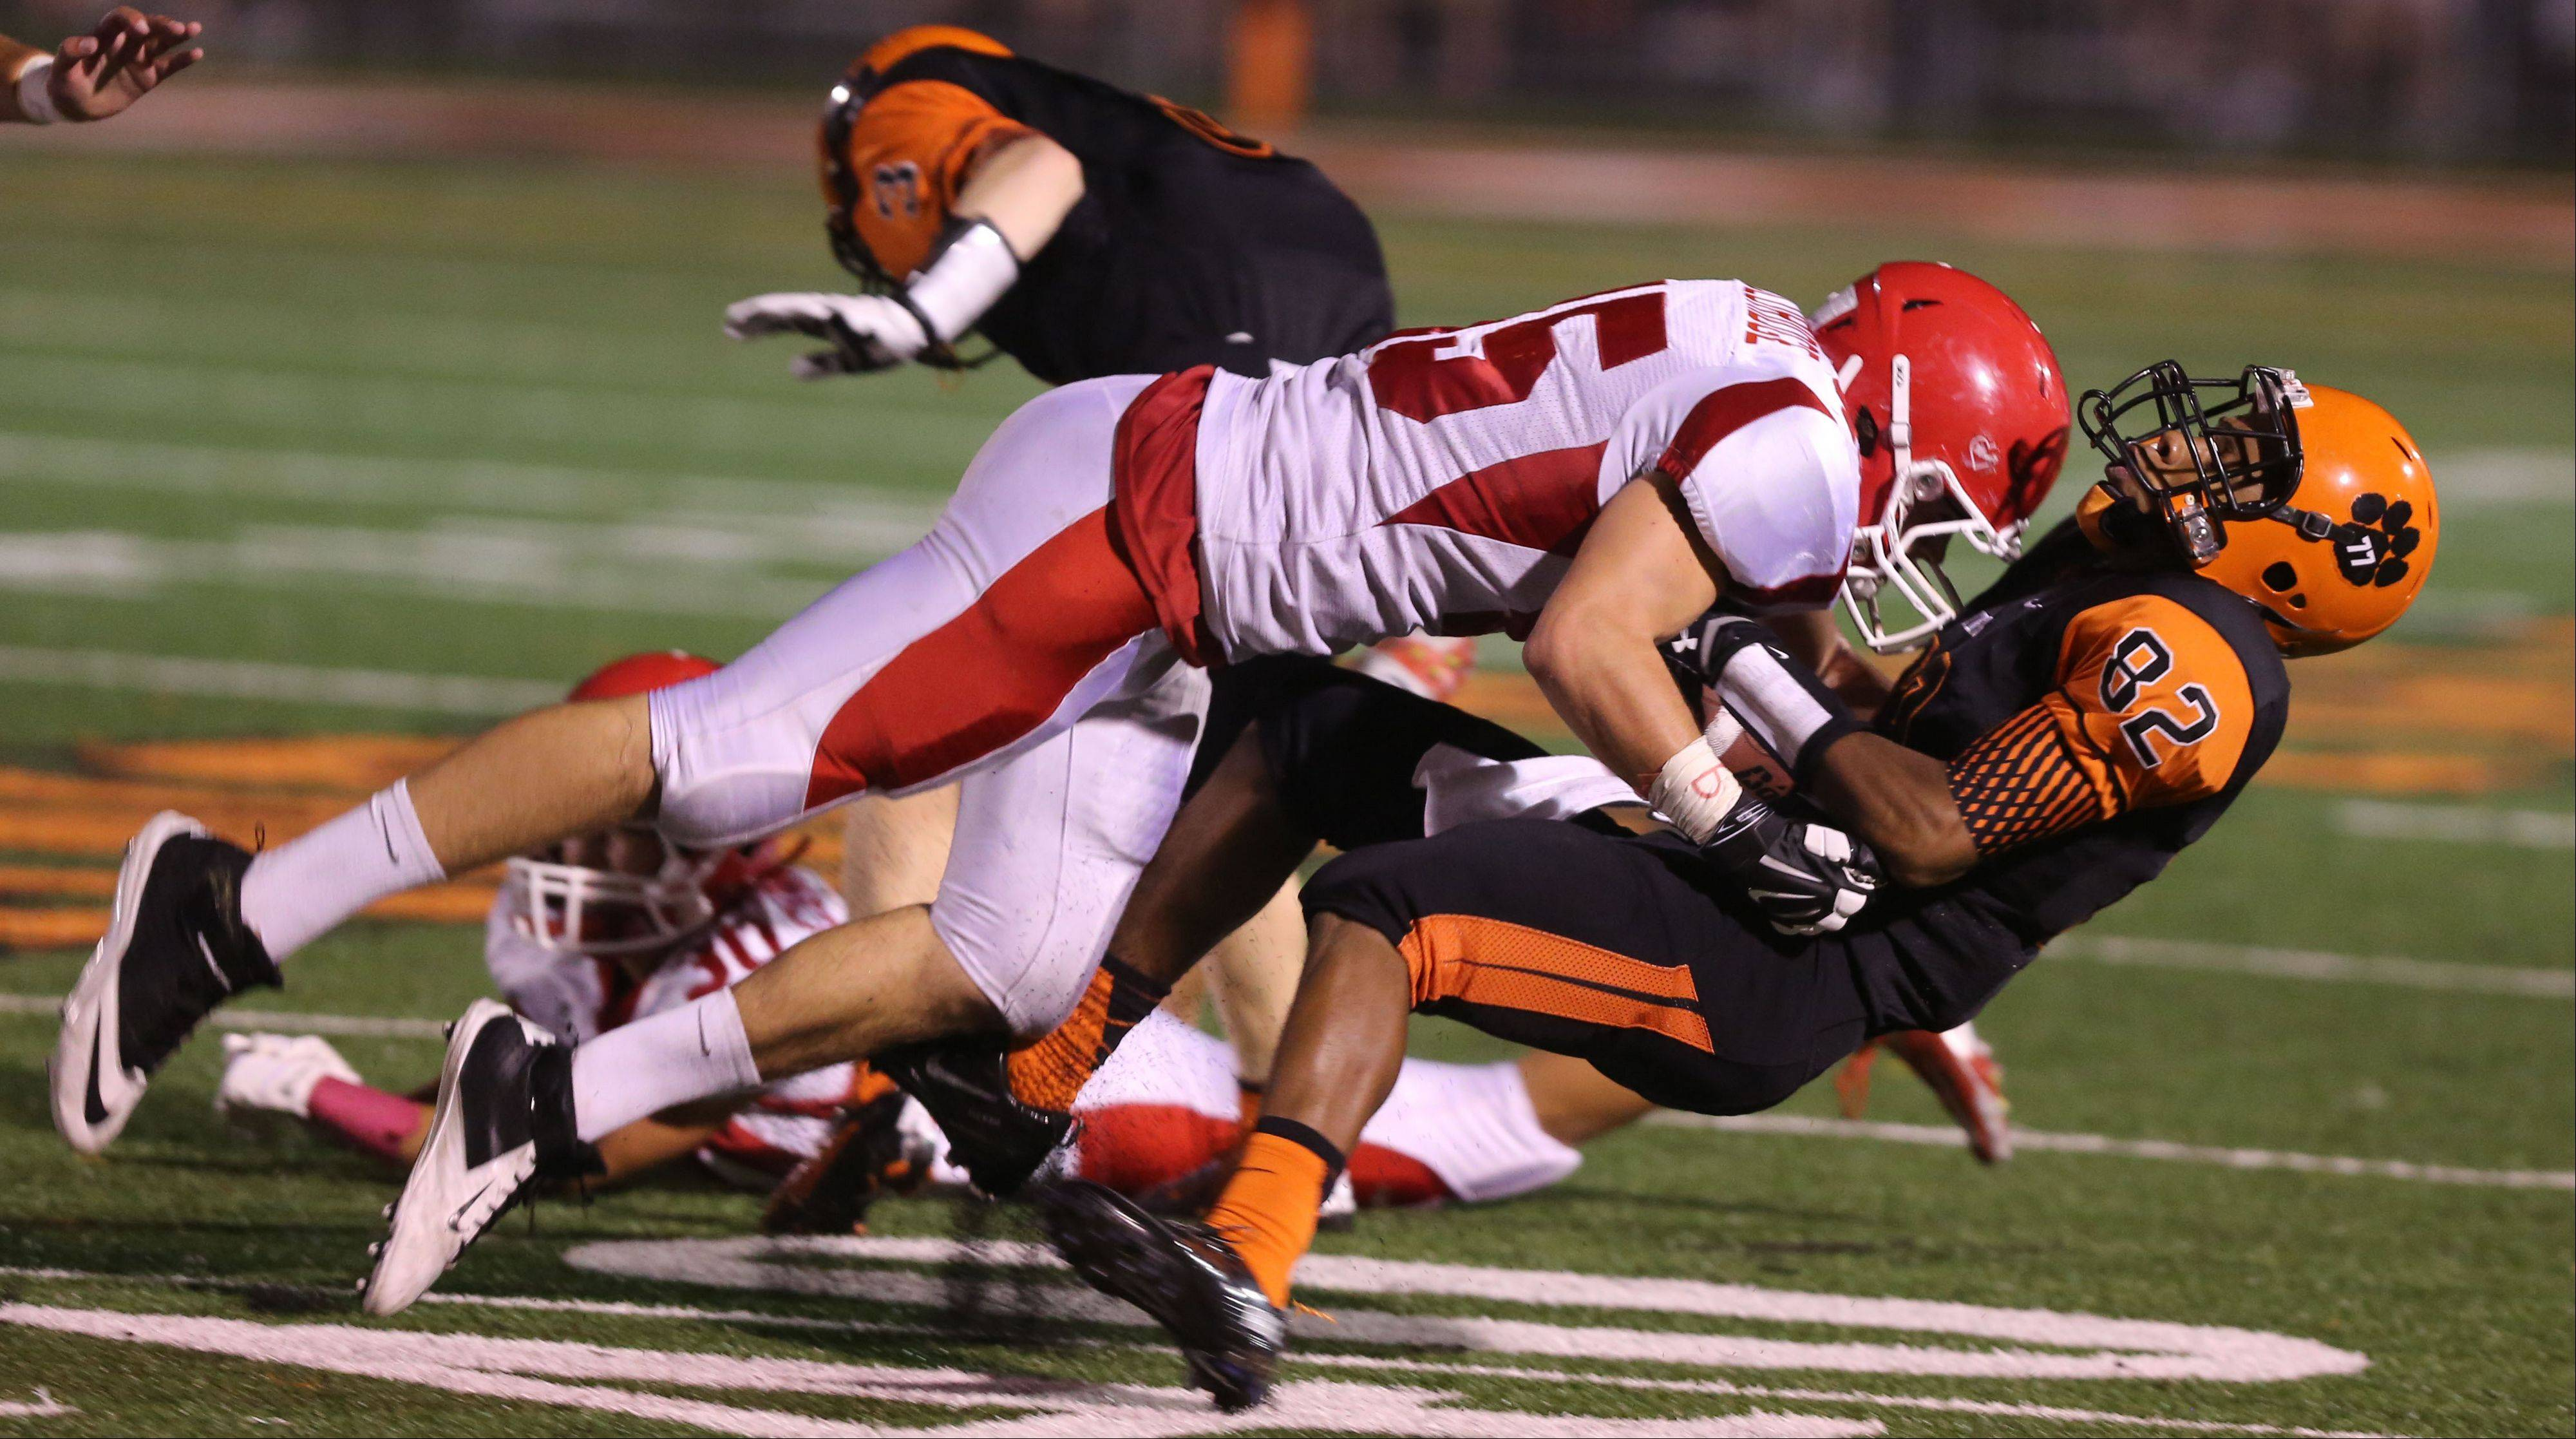 Wheaton Warrenville South's Keishawn Watson is leveled by a Naperville Central defender.